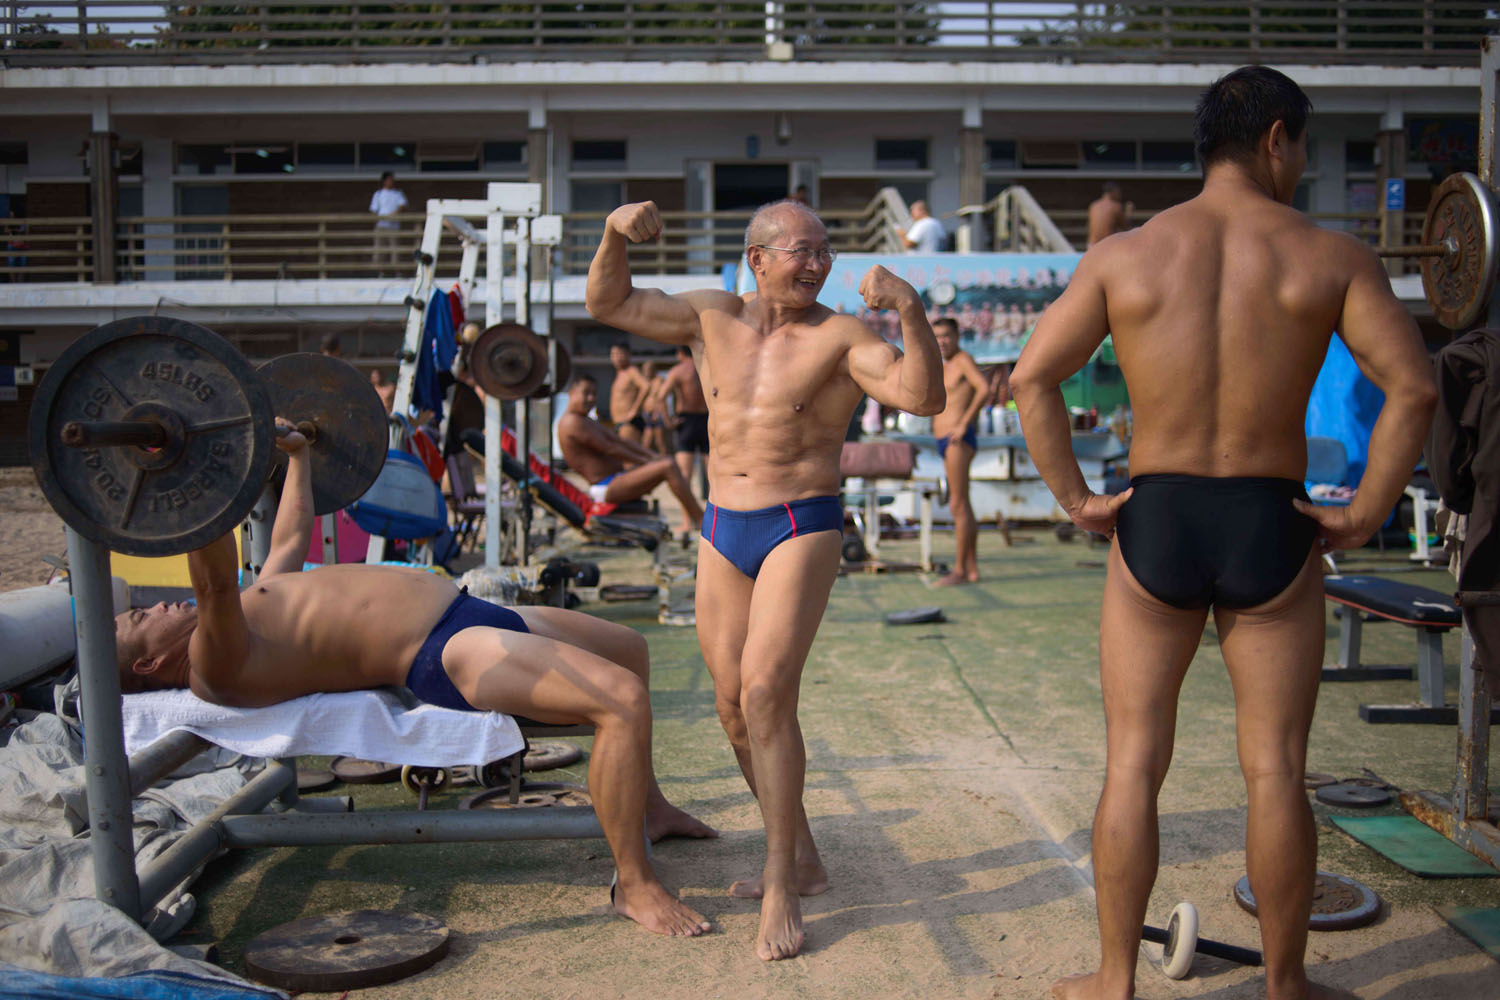 Sept. 21, 2013. A Chinese weightlifter flexes his muscles at an outdoor gym on a beach in Qingdao, Shandong province.